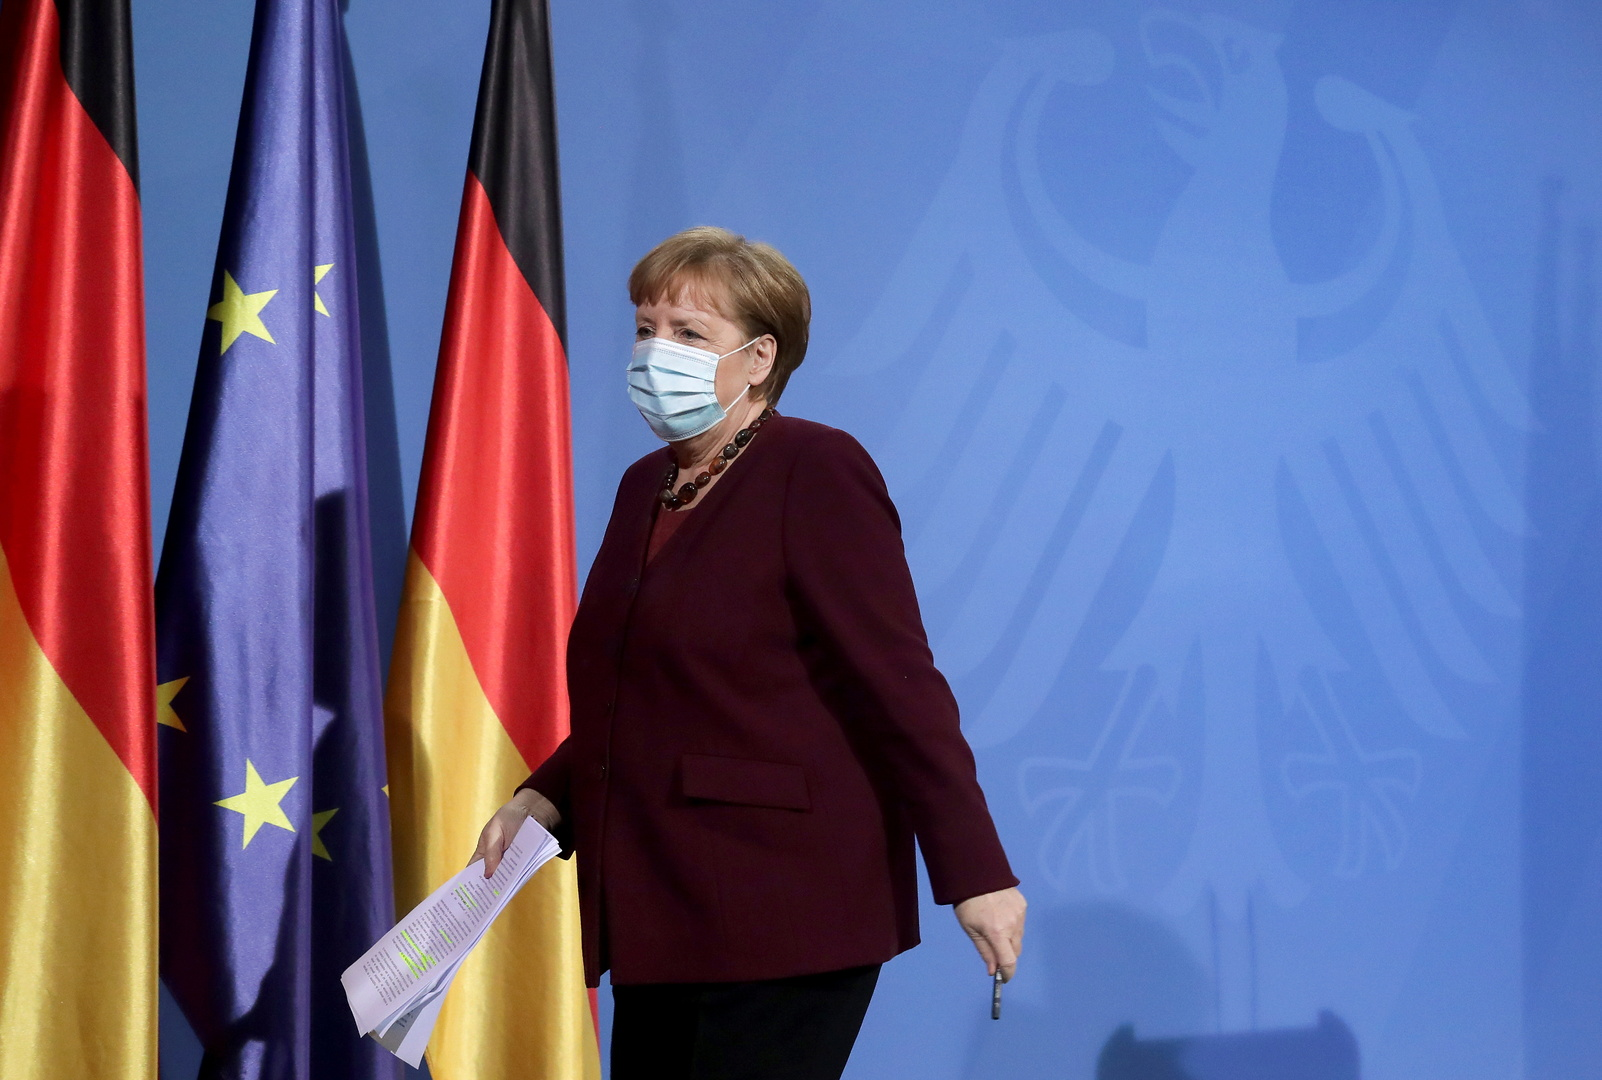 Merkel does not rule out Germany's purchase of a vaccine